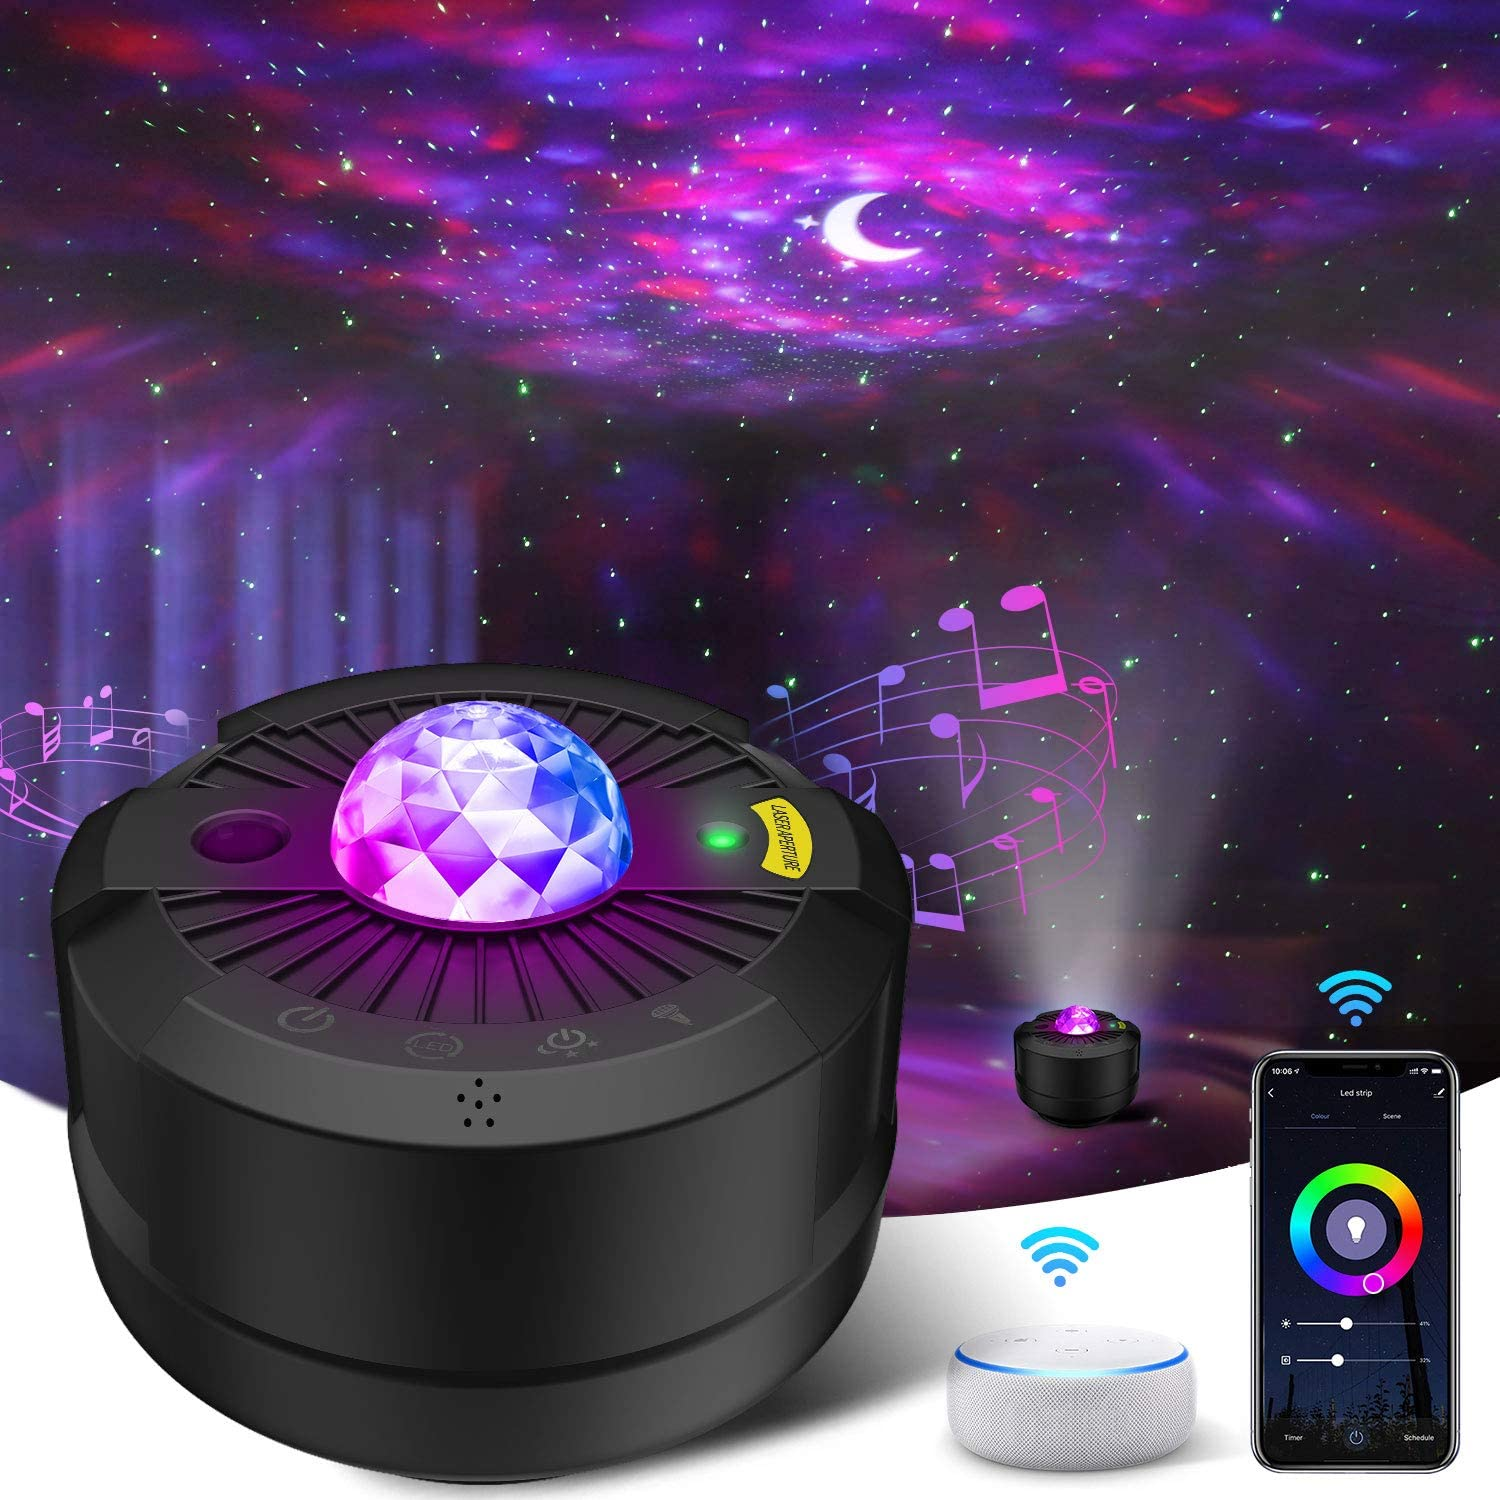 Star Projector Led Night Light Moon Galaxy Projection Bedroom Lighting Smart APP with Remote Control for Baby Kids Gifts